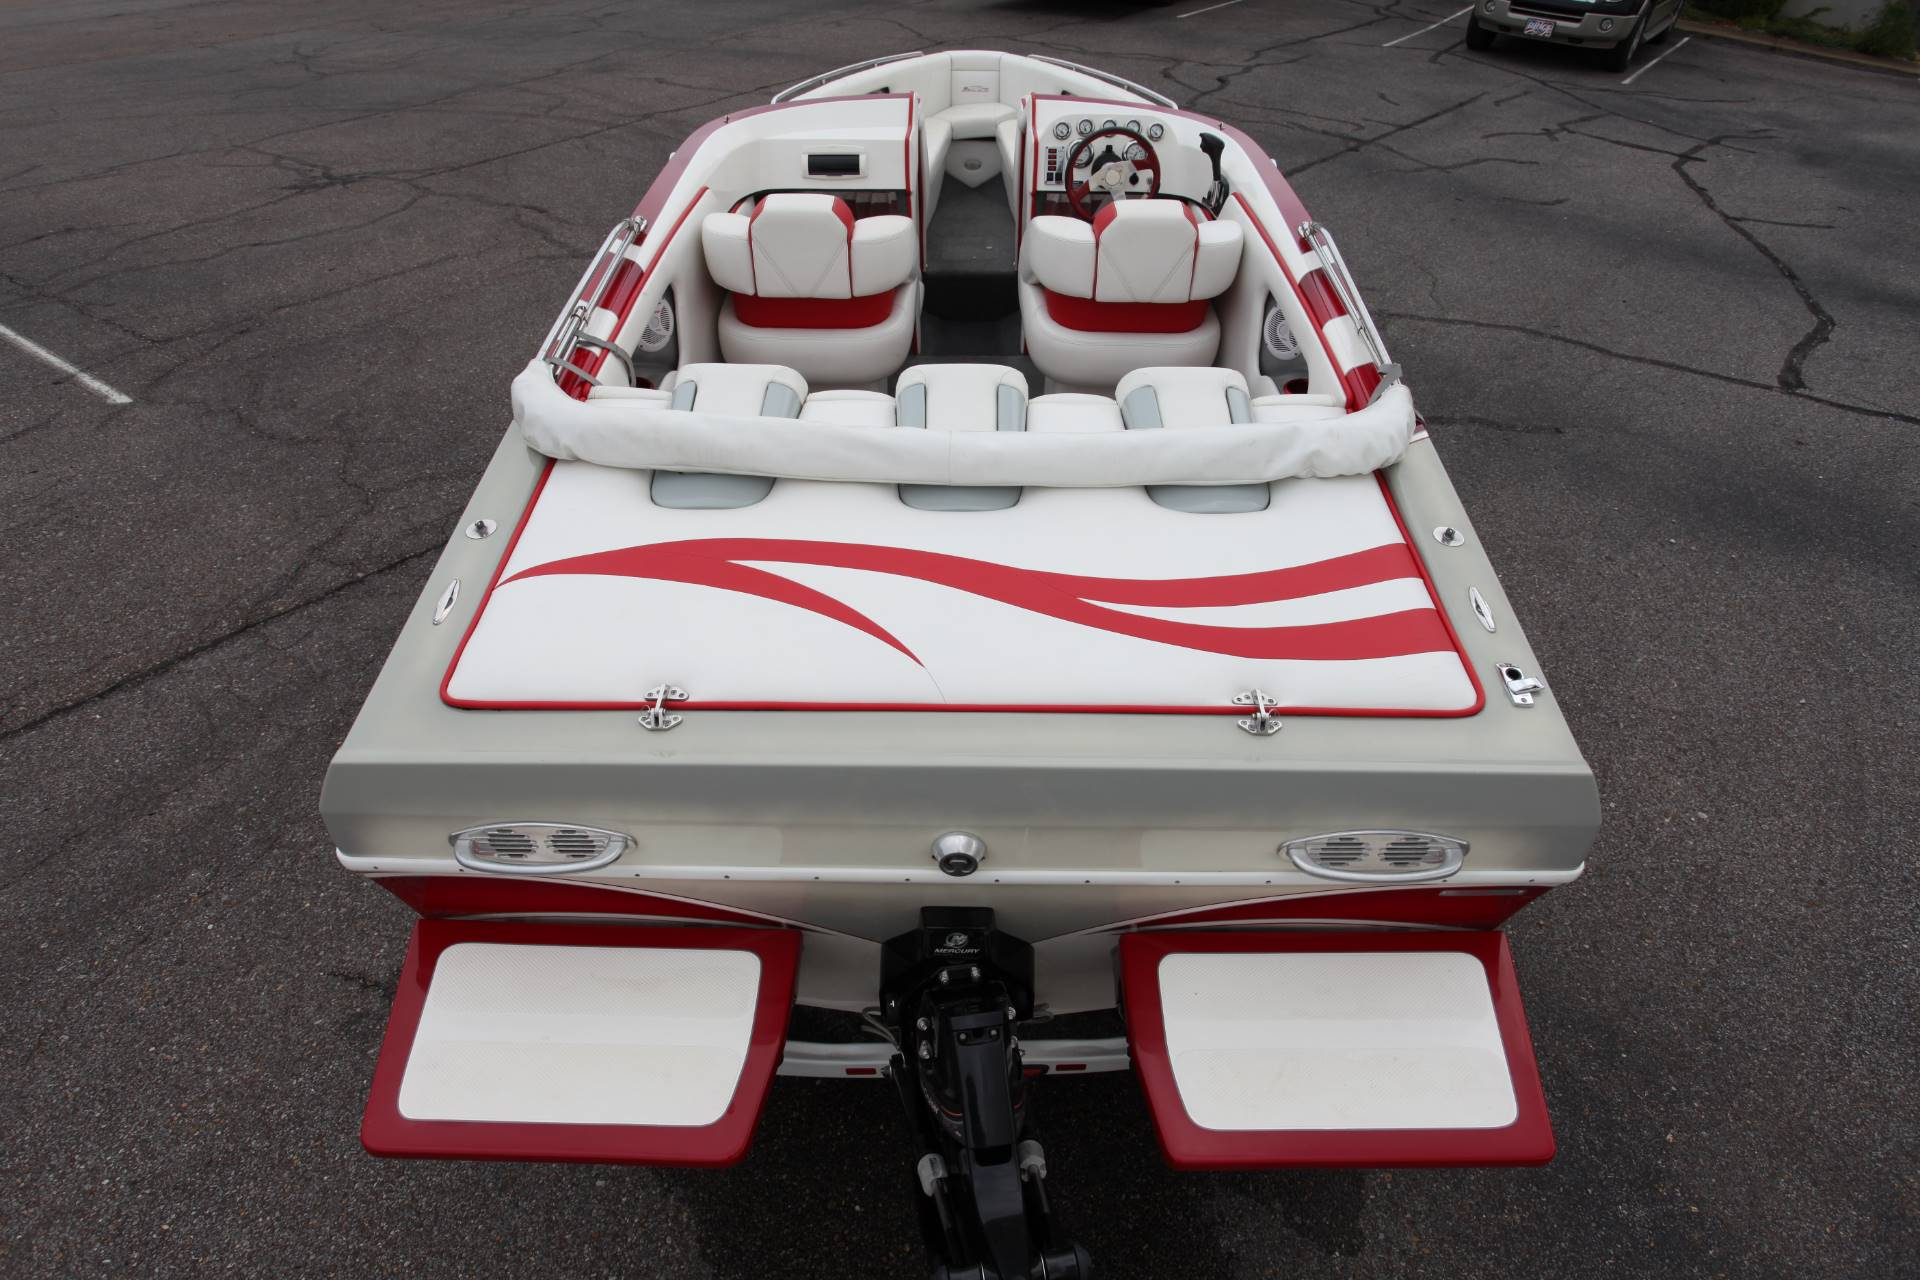 2011 Genesis Power Boats 23' Xtreme in Memphis, Tennessee - Photo 5